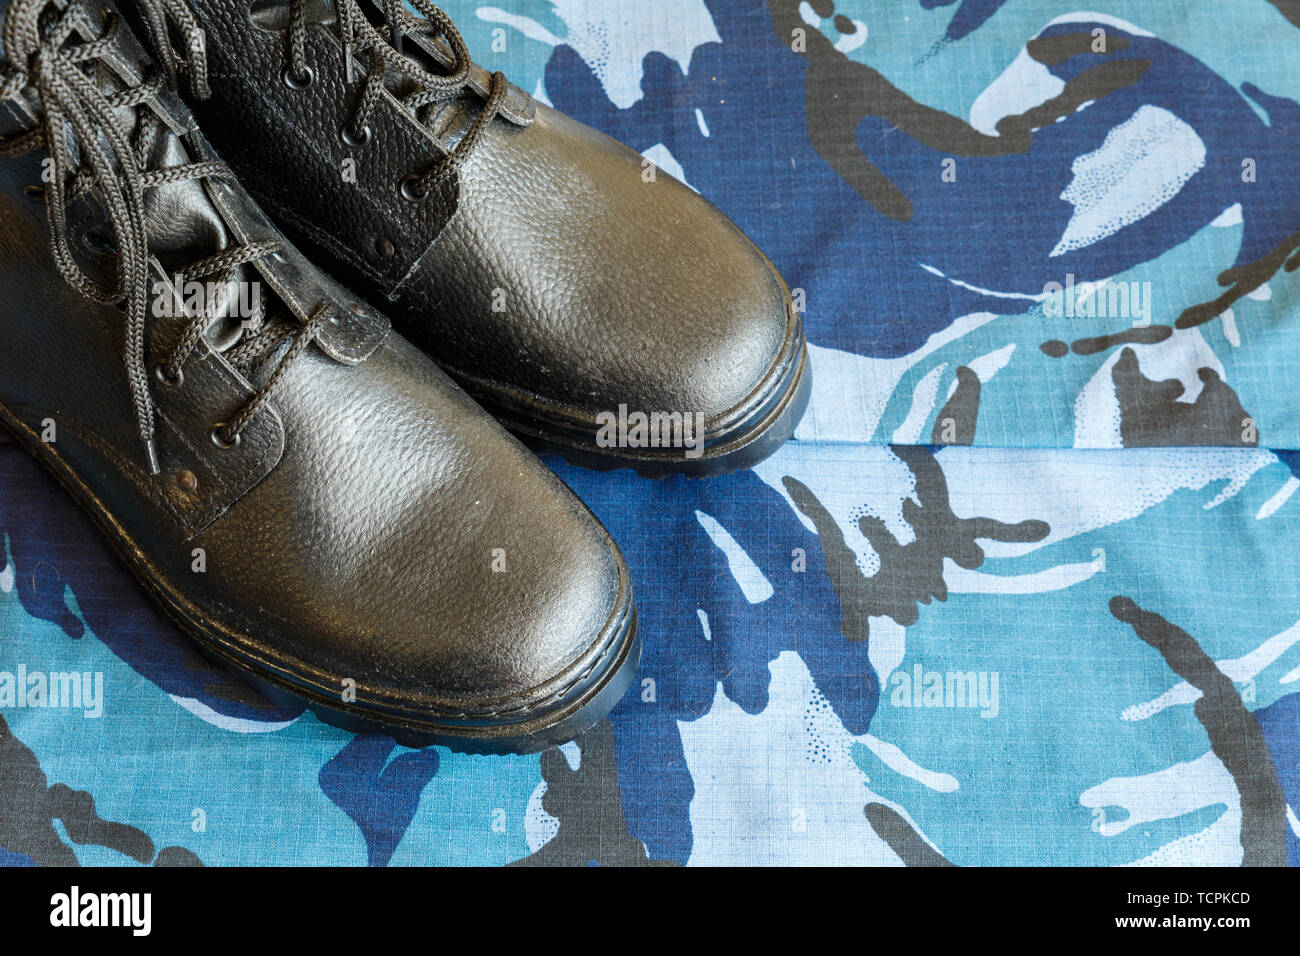 e6e8fdc448c Army Boot Stock Photos & Army Boot Stock Images - Alamy